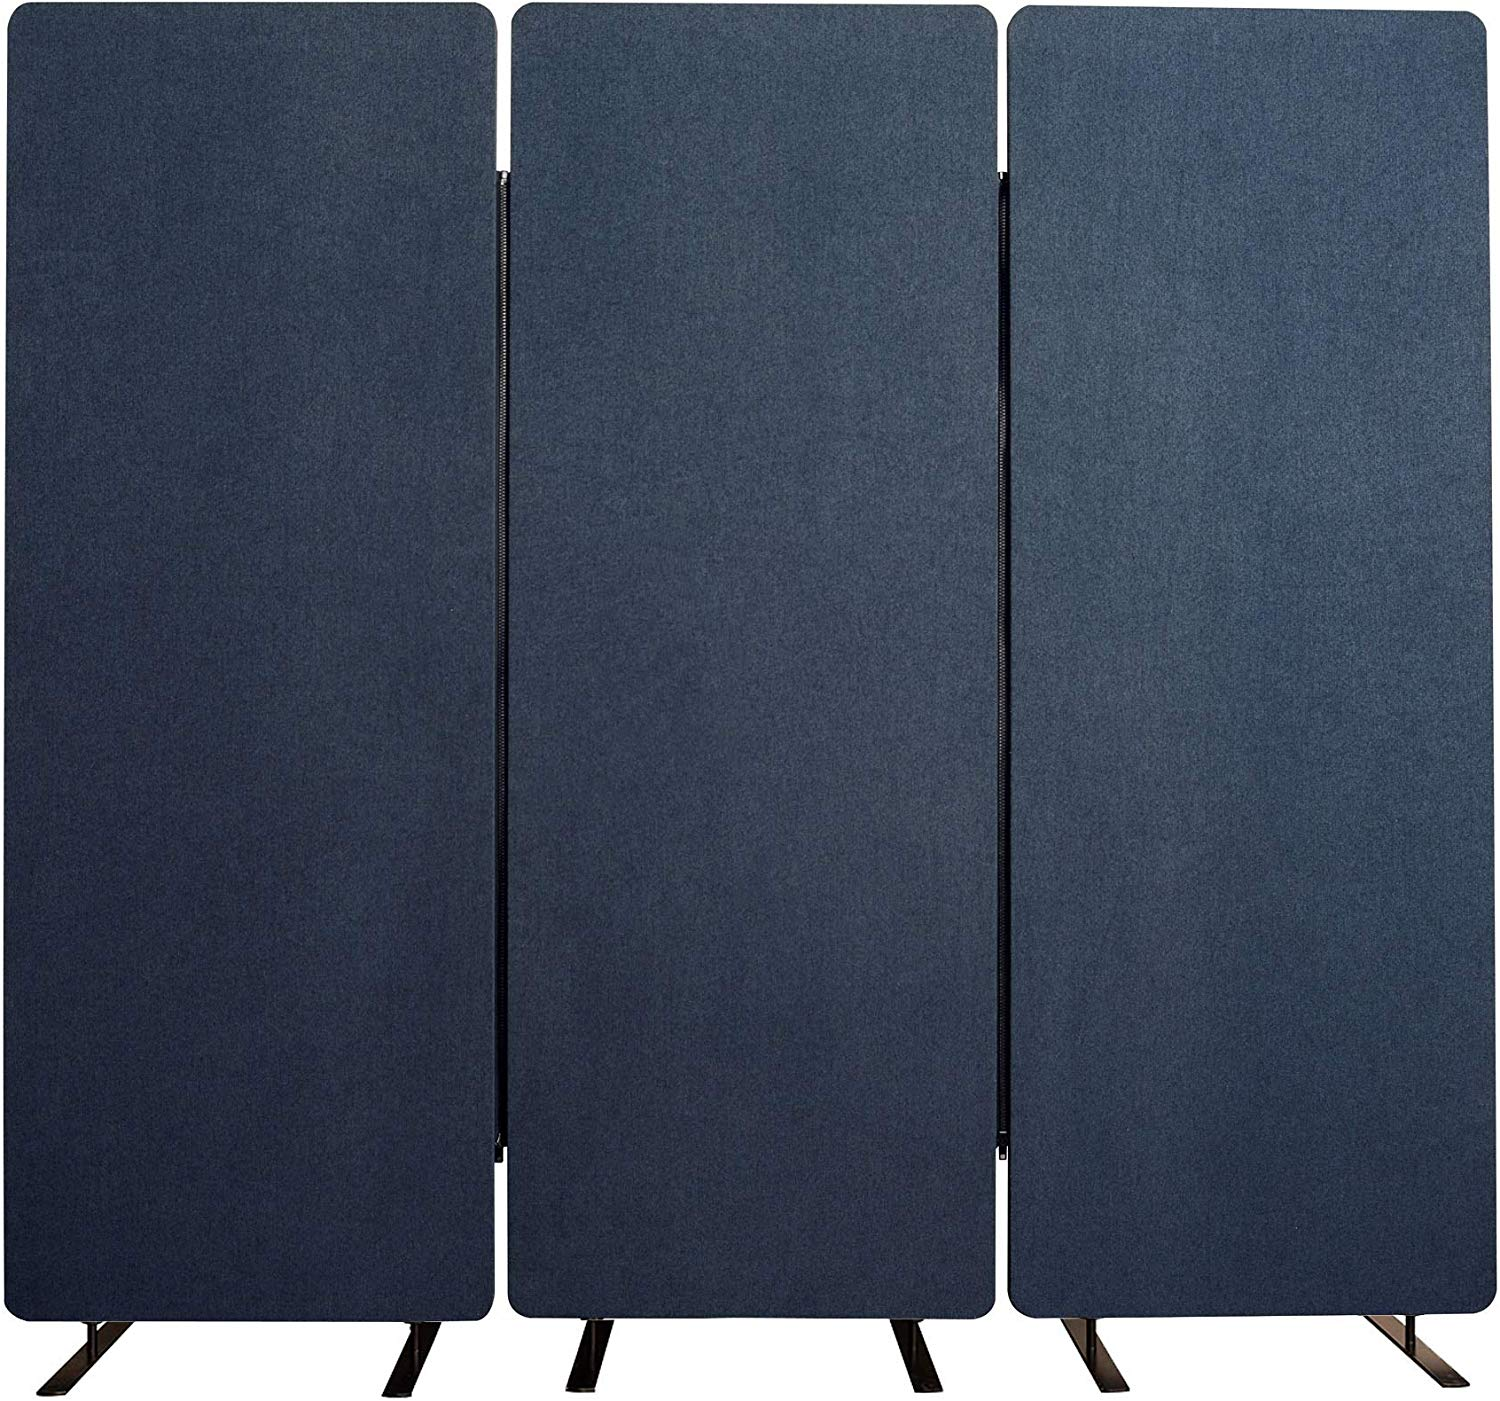 Click image to open expanded view ReFocus Acoustic Room Dividers